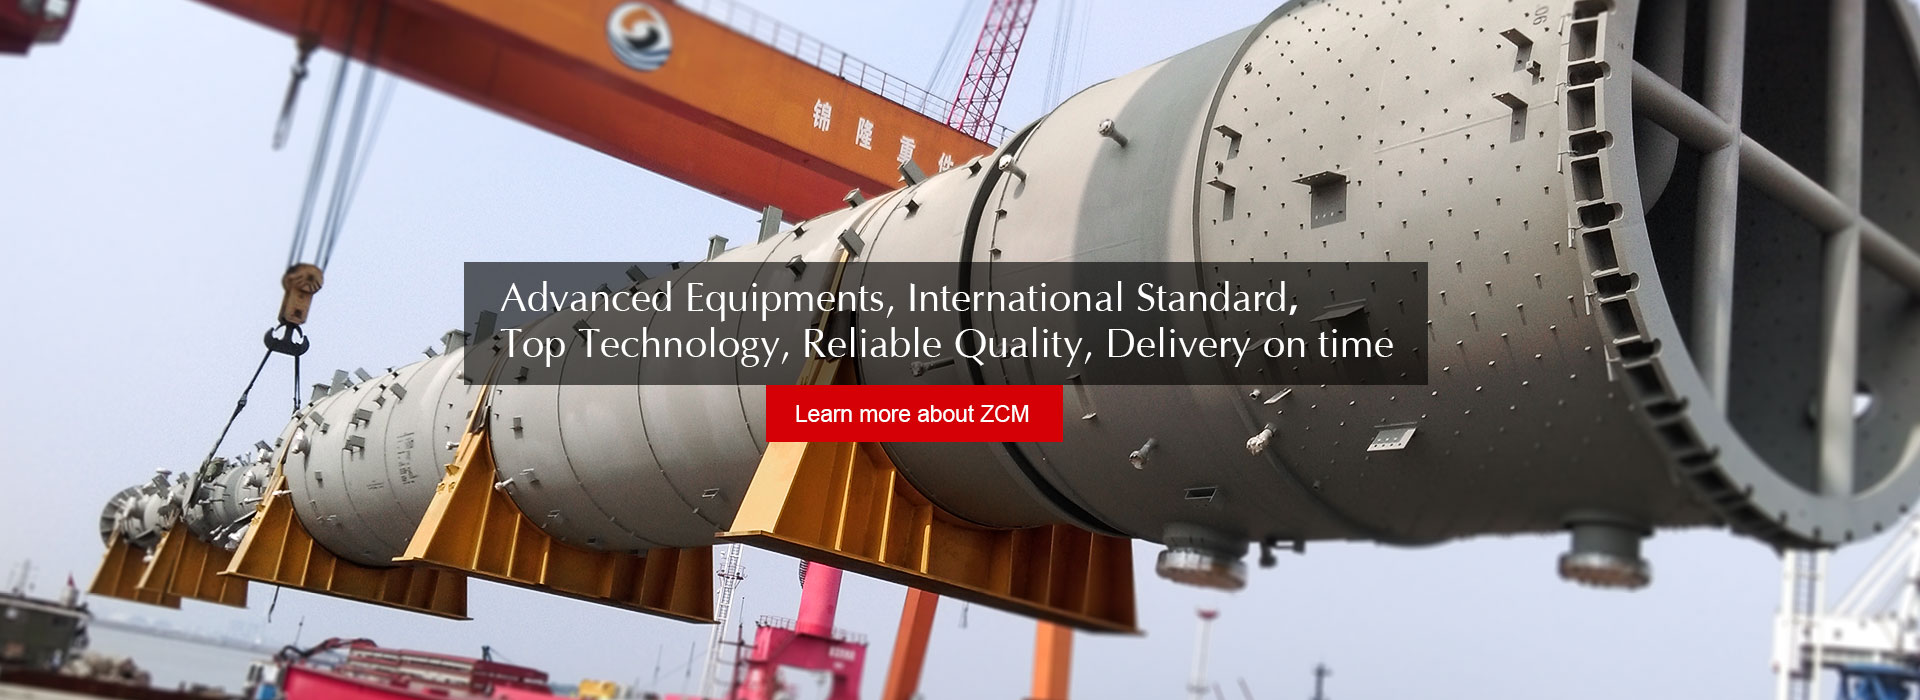 Advanced Equipments, International standard, Top Technology, Reliable Quality, Delivery on time